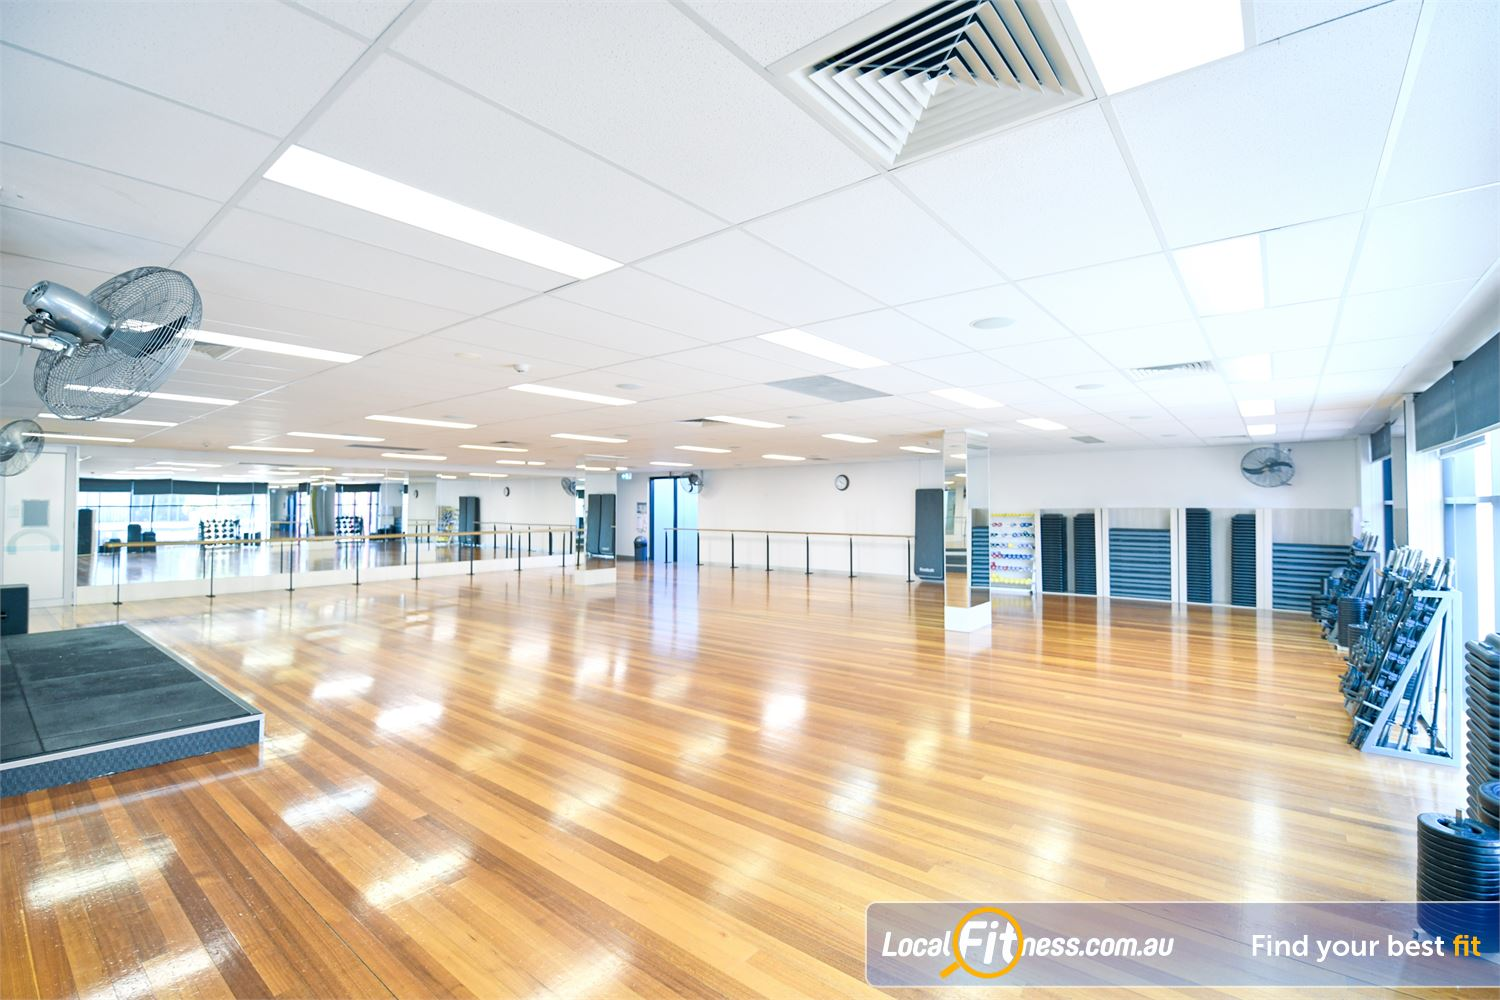 Goodlife Health Clubs Port Melbourne Our spacious Port Melbourne group fitness studio with scenic views of Bay Street.